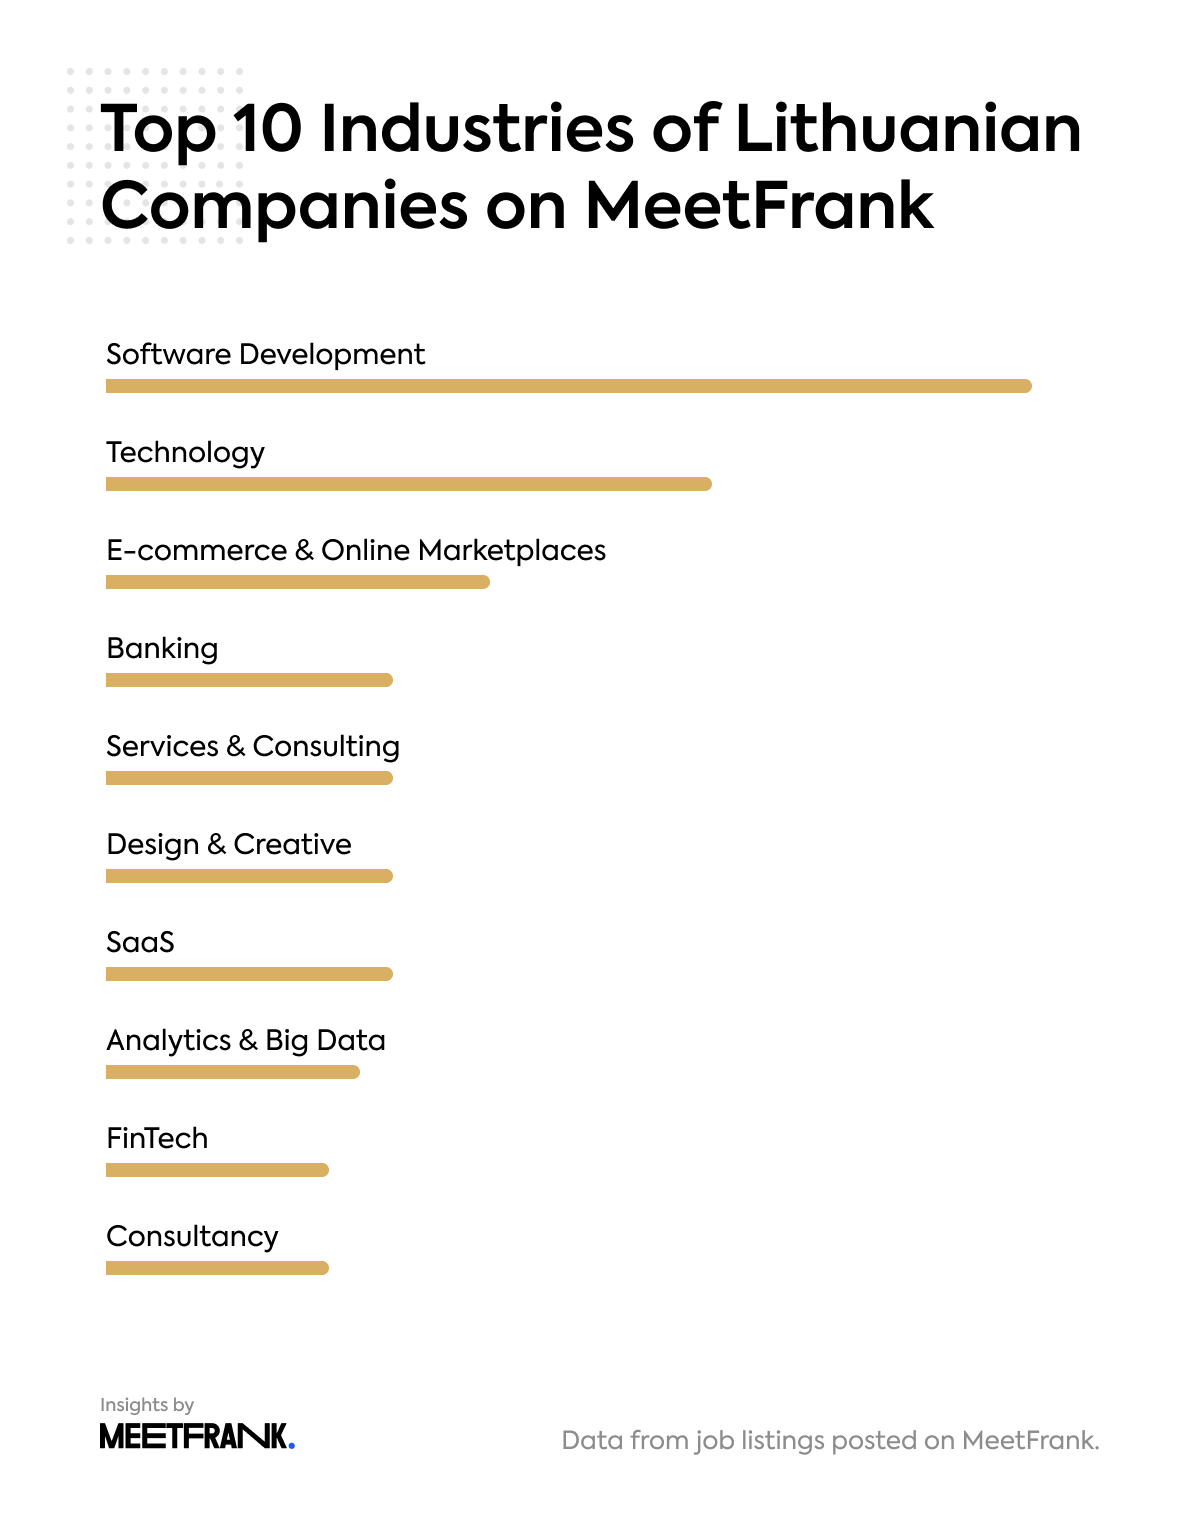 top 10 industries of Lithuanian companies on MeetFrank